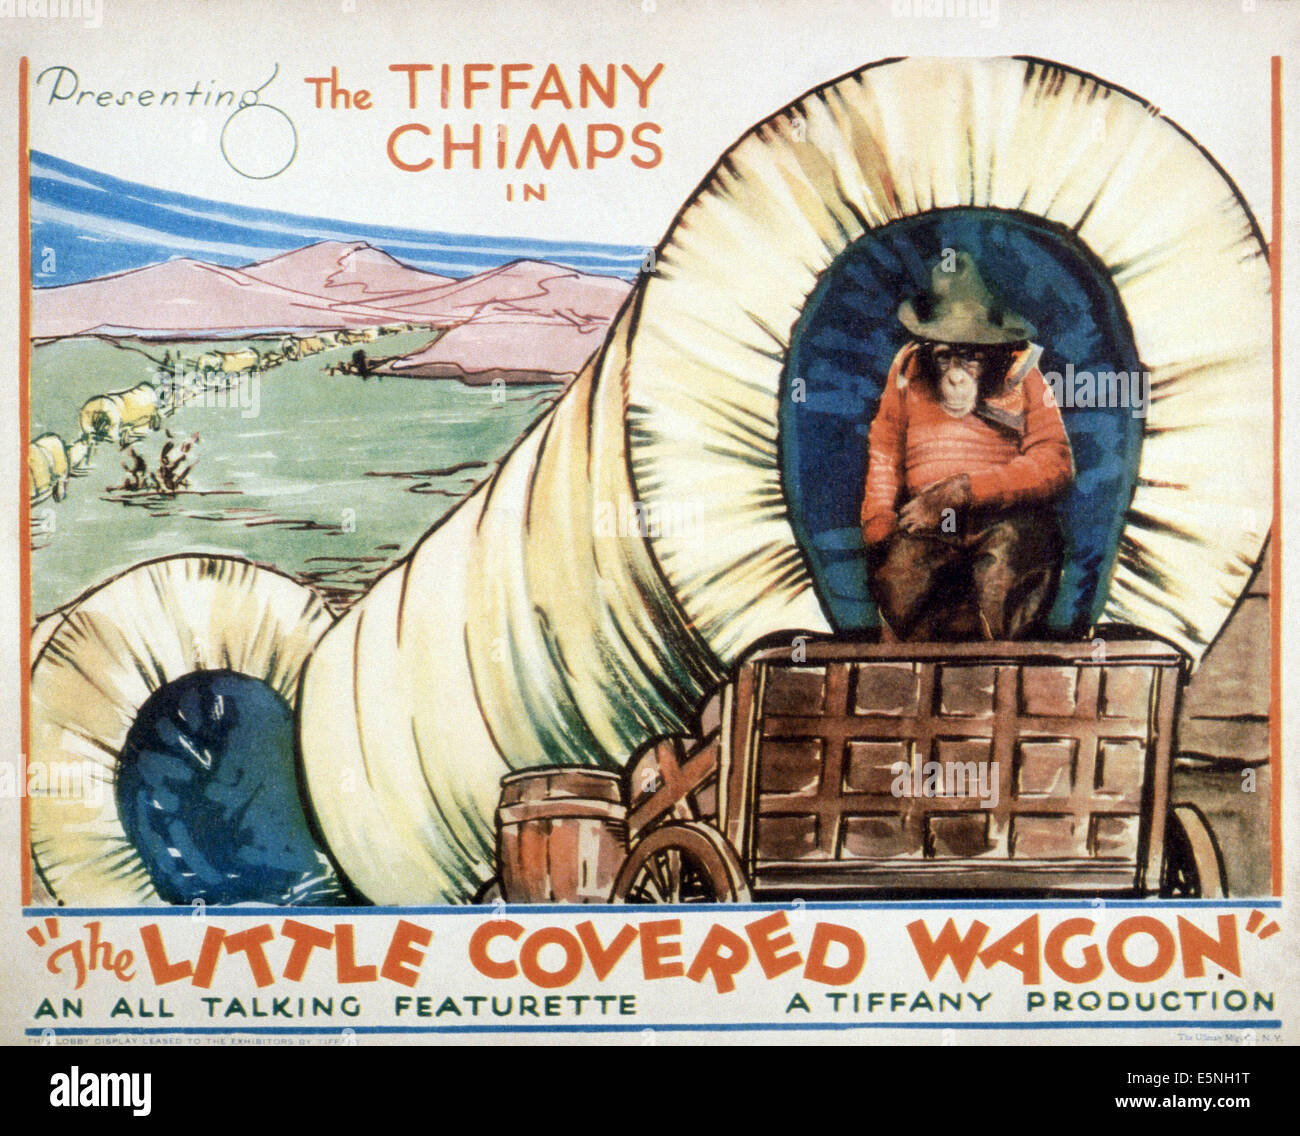 THE LITTLE COVERED WAGON, ca. 1930 - Stock Image